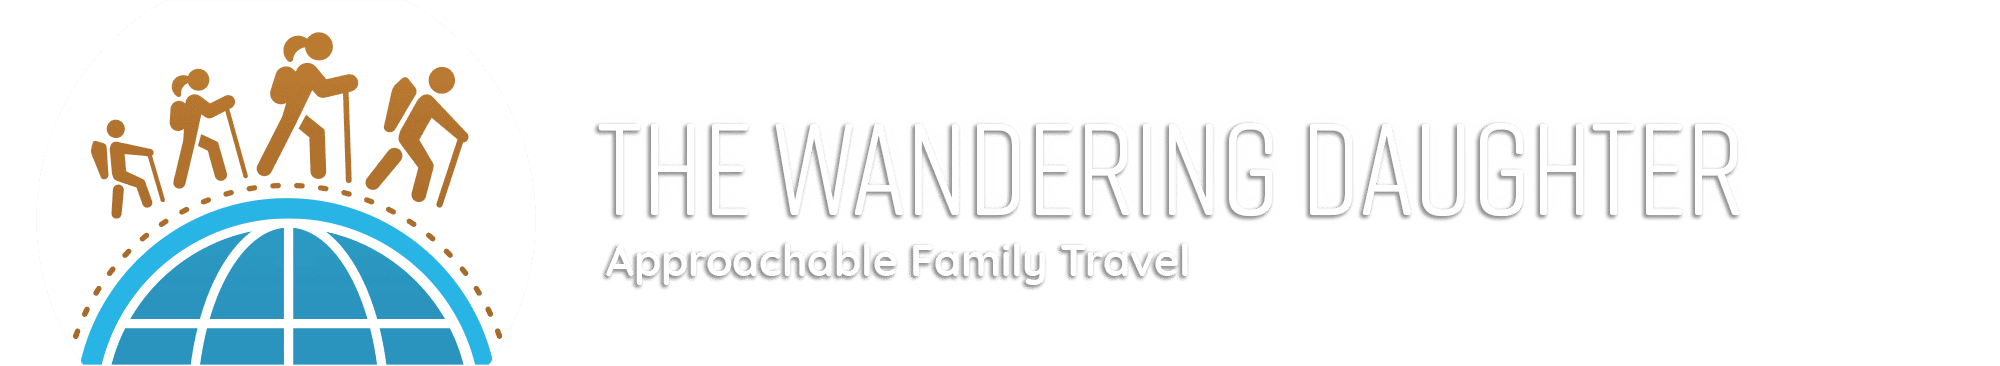 Header Image with logo - The Wandering Daughter, Approachable Family Travel - Logo is family of four hiking around the world